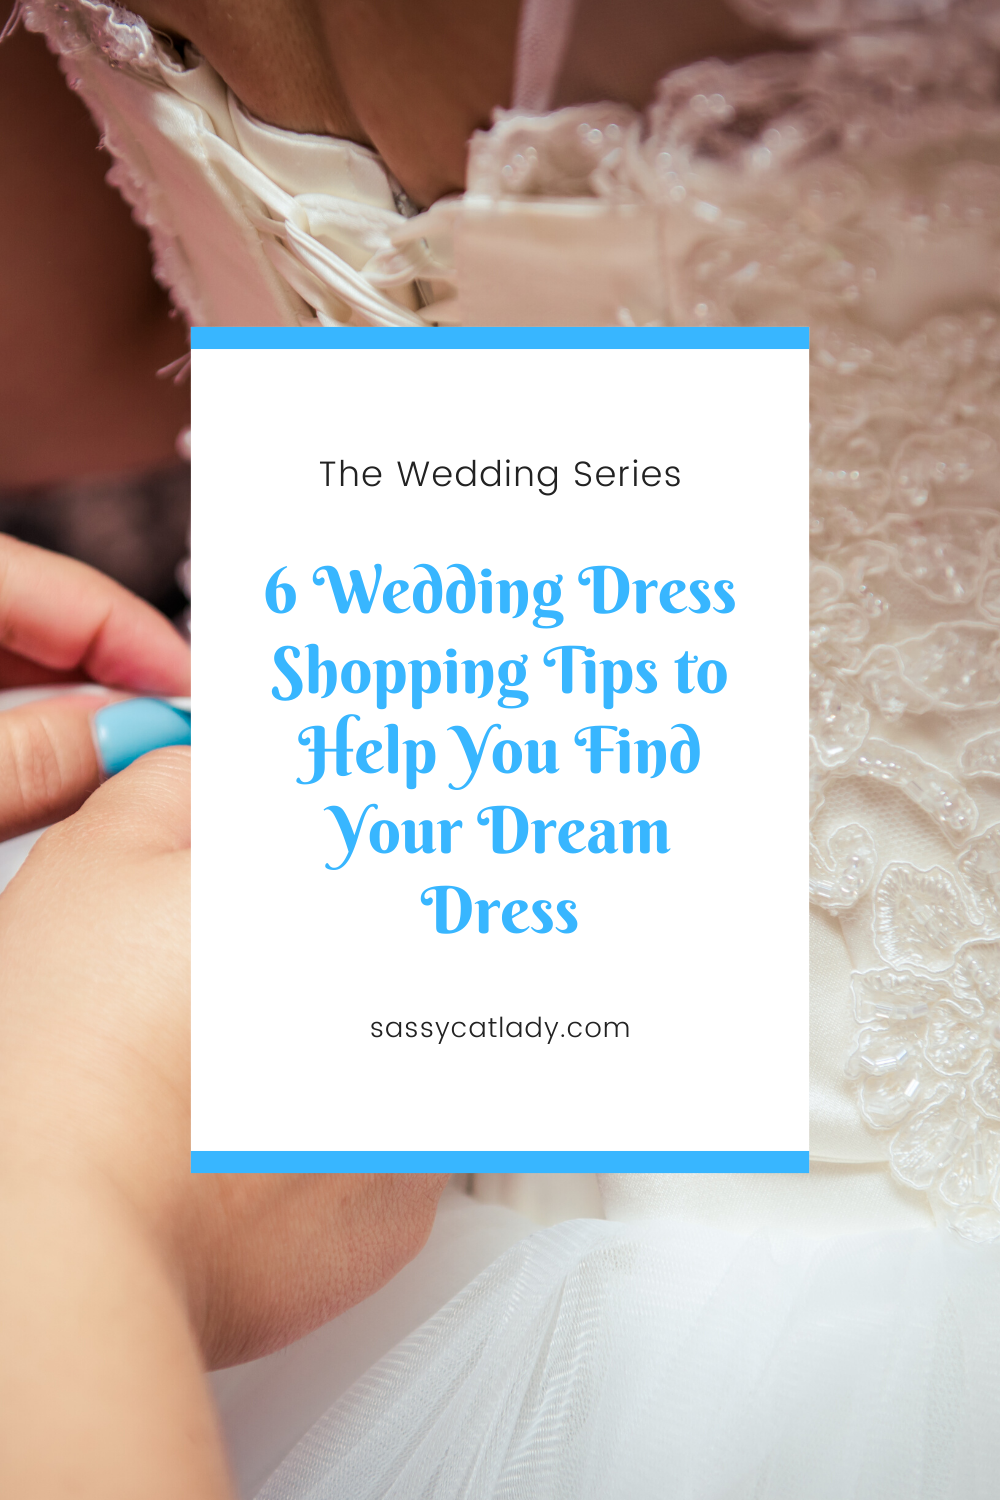 6 Wedding Dress Shopping Tips